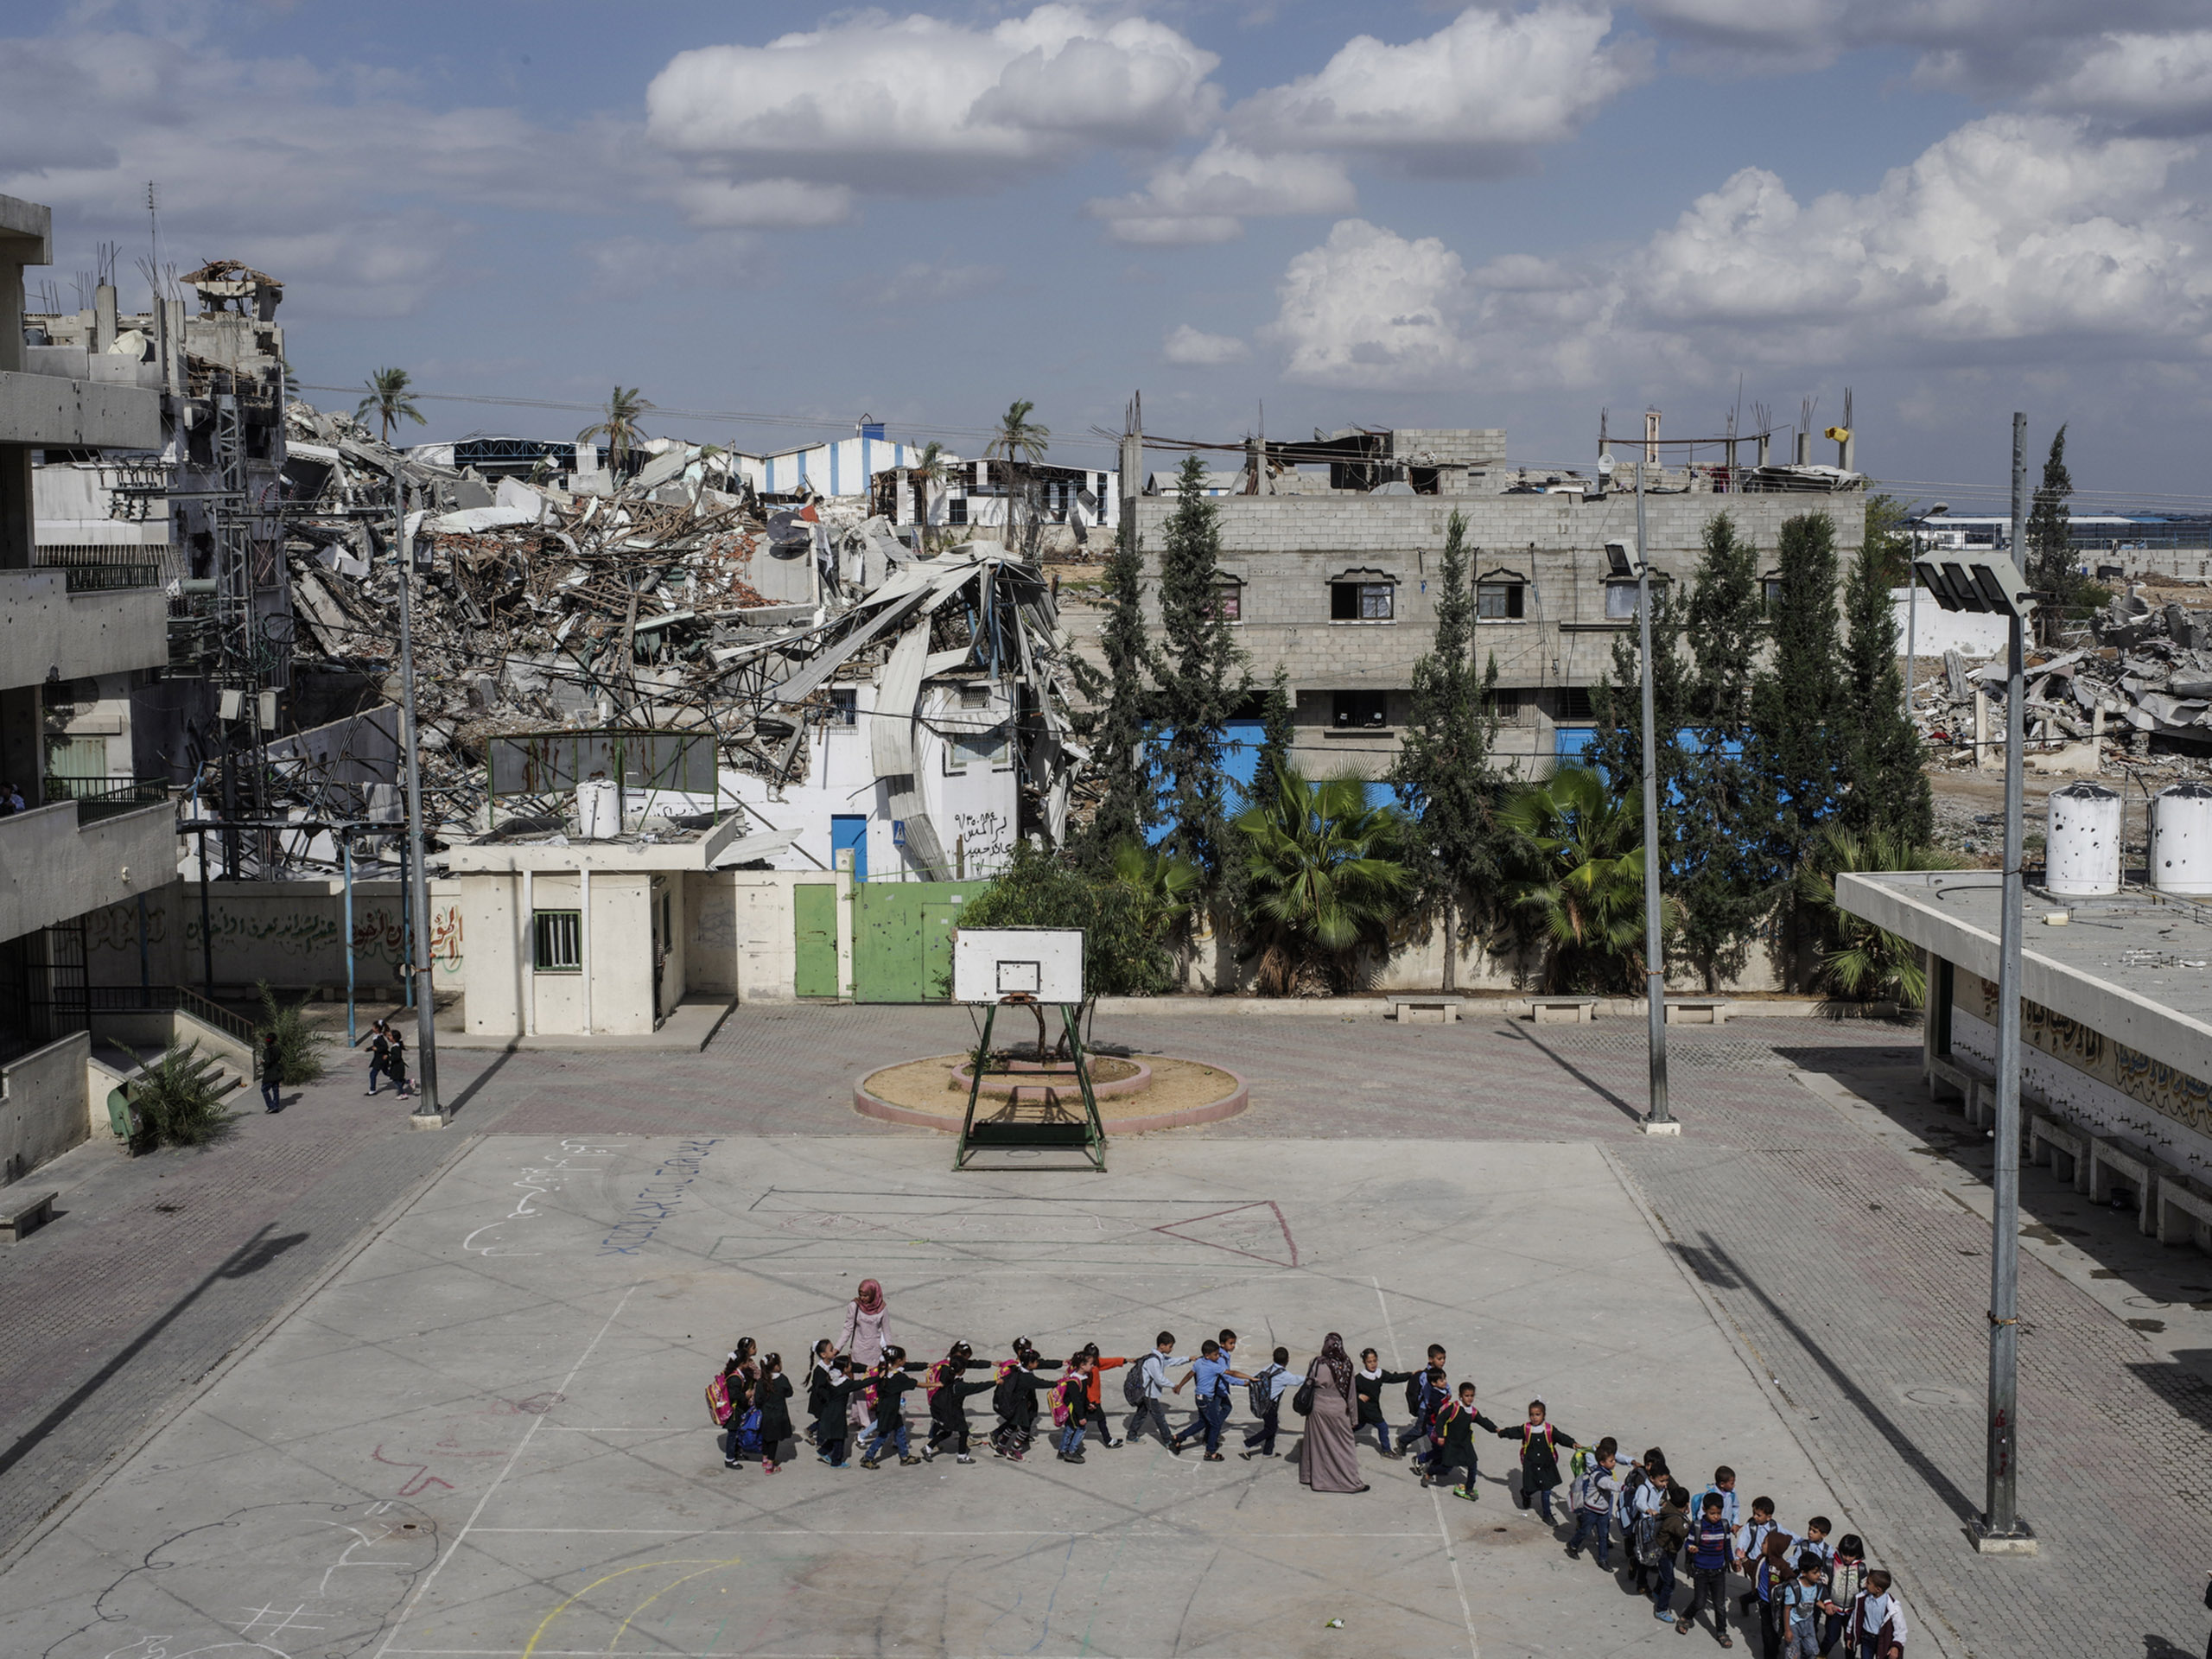 Schoolchildren head to class at the Sobhi Abu Karsh School in the Shujai'iya neighborhood of Gaza.